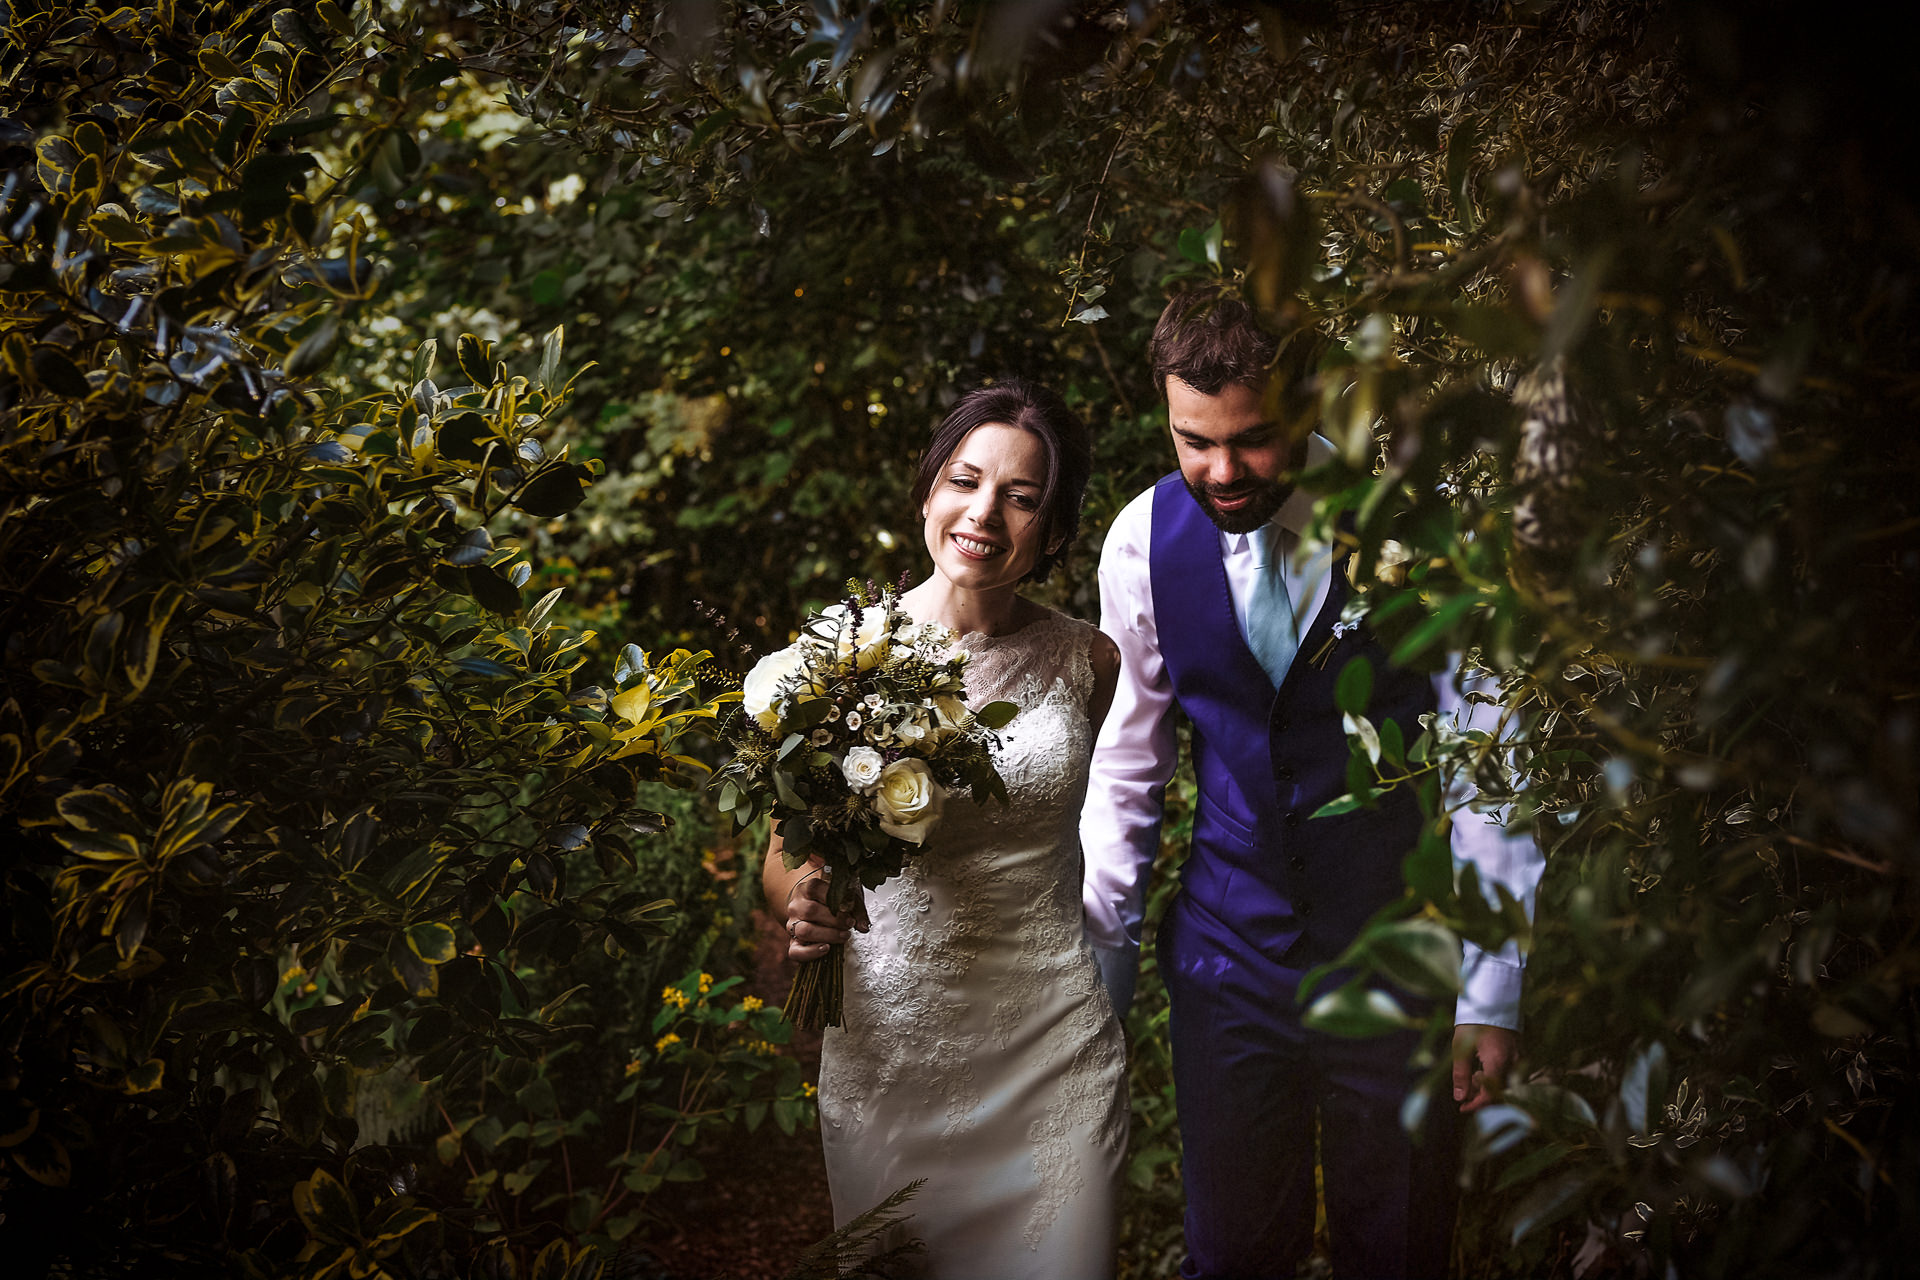 Bride and groom walking through the bushes at a back garden wedding in Suffolk